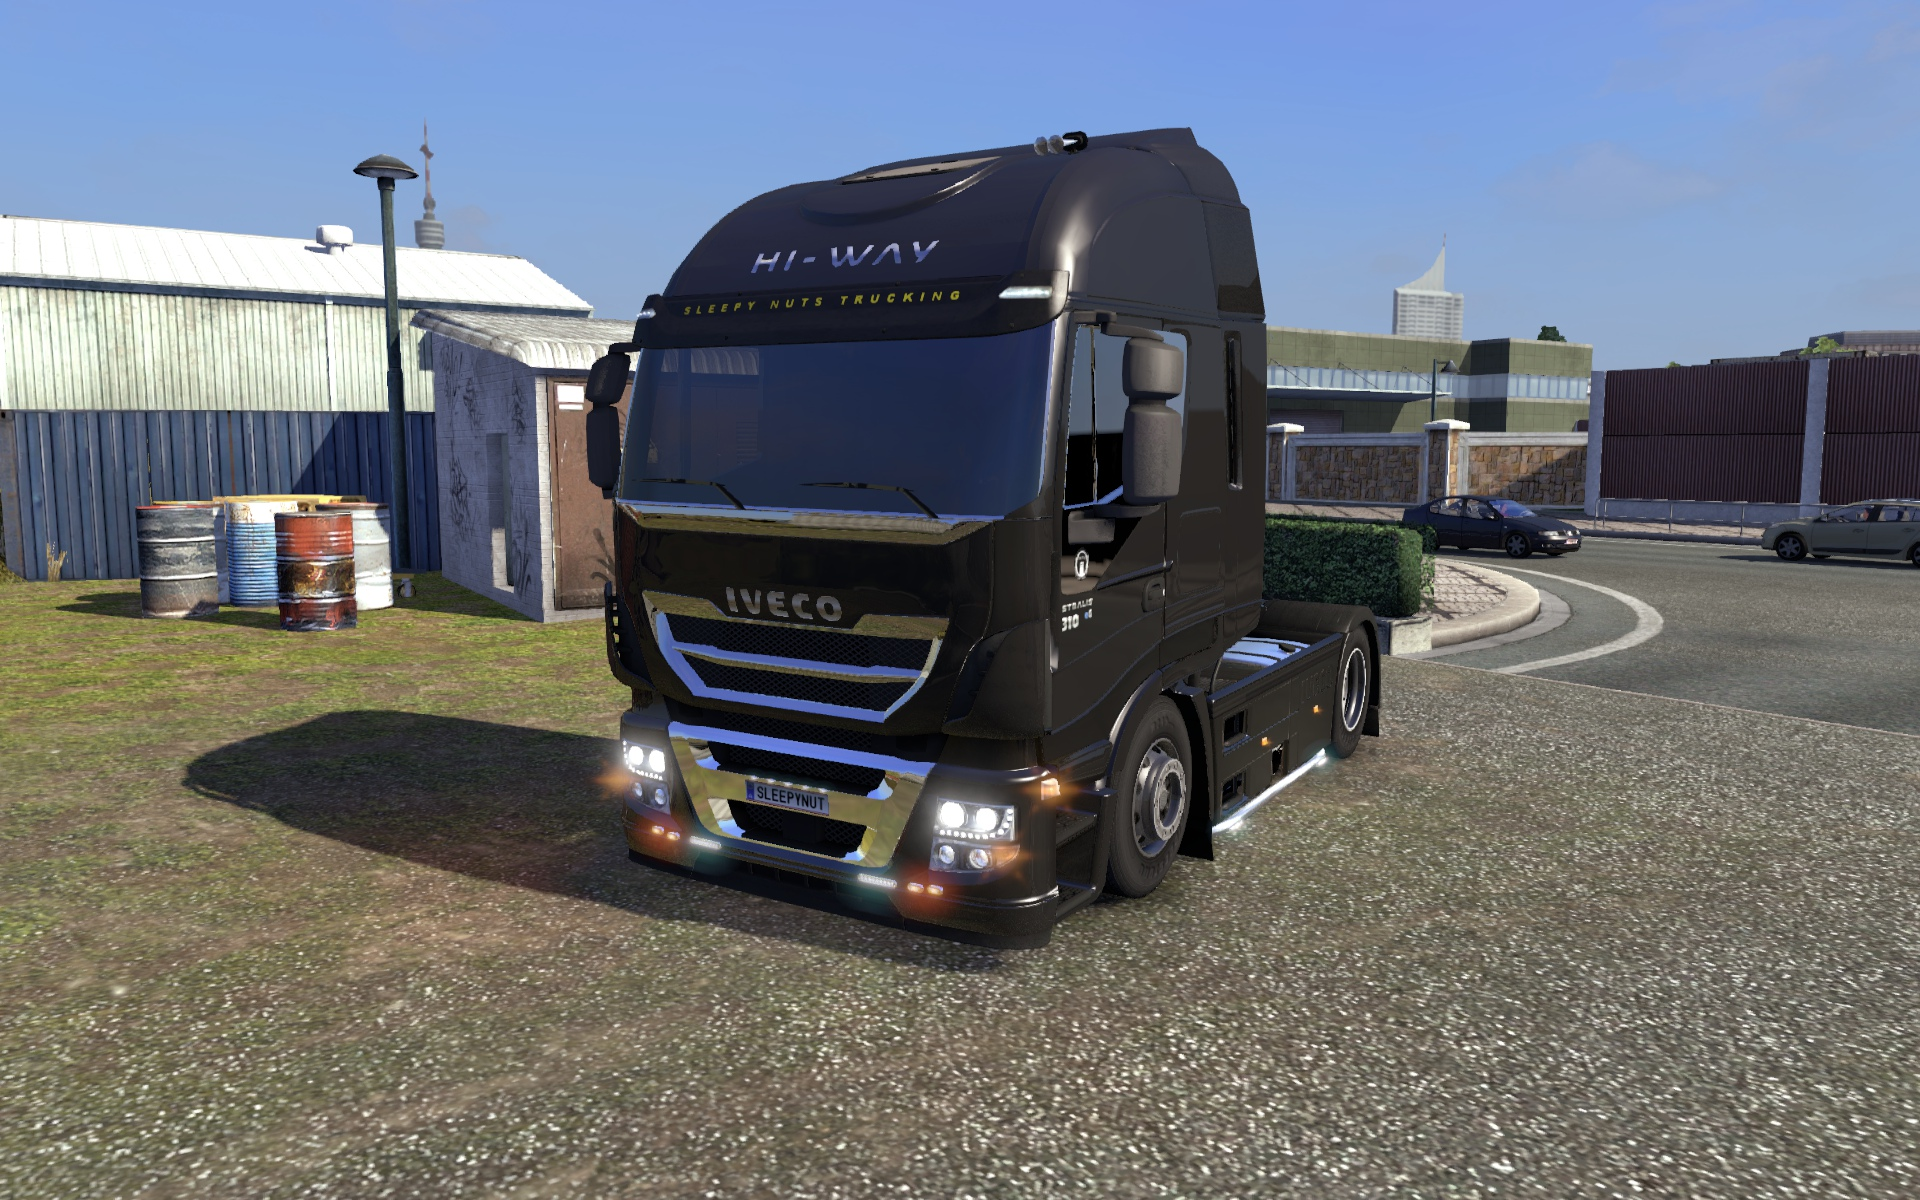 Custom Paint Truck Page 21 Scs Software Photos Full Image Https Wotr Gallerys3amazonawsc 0295a4